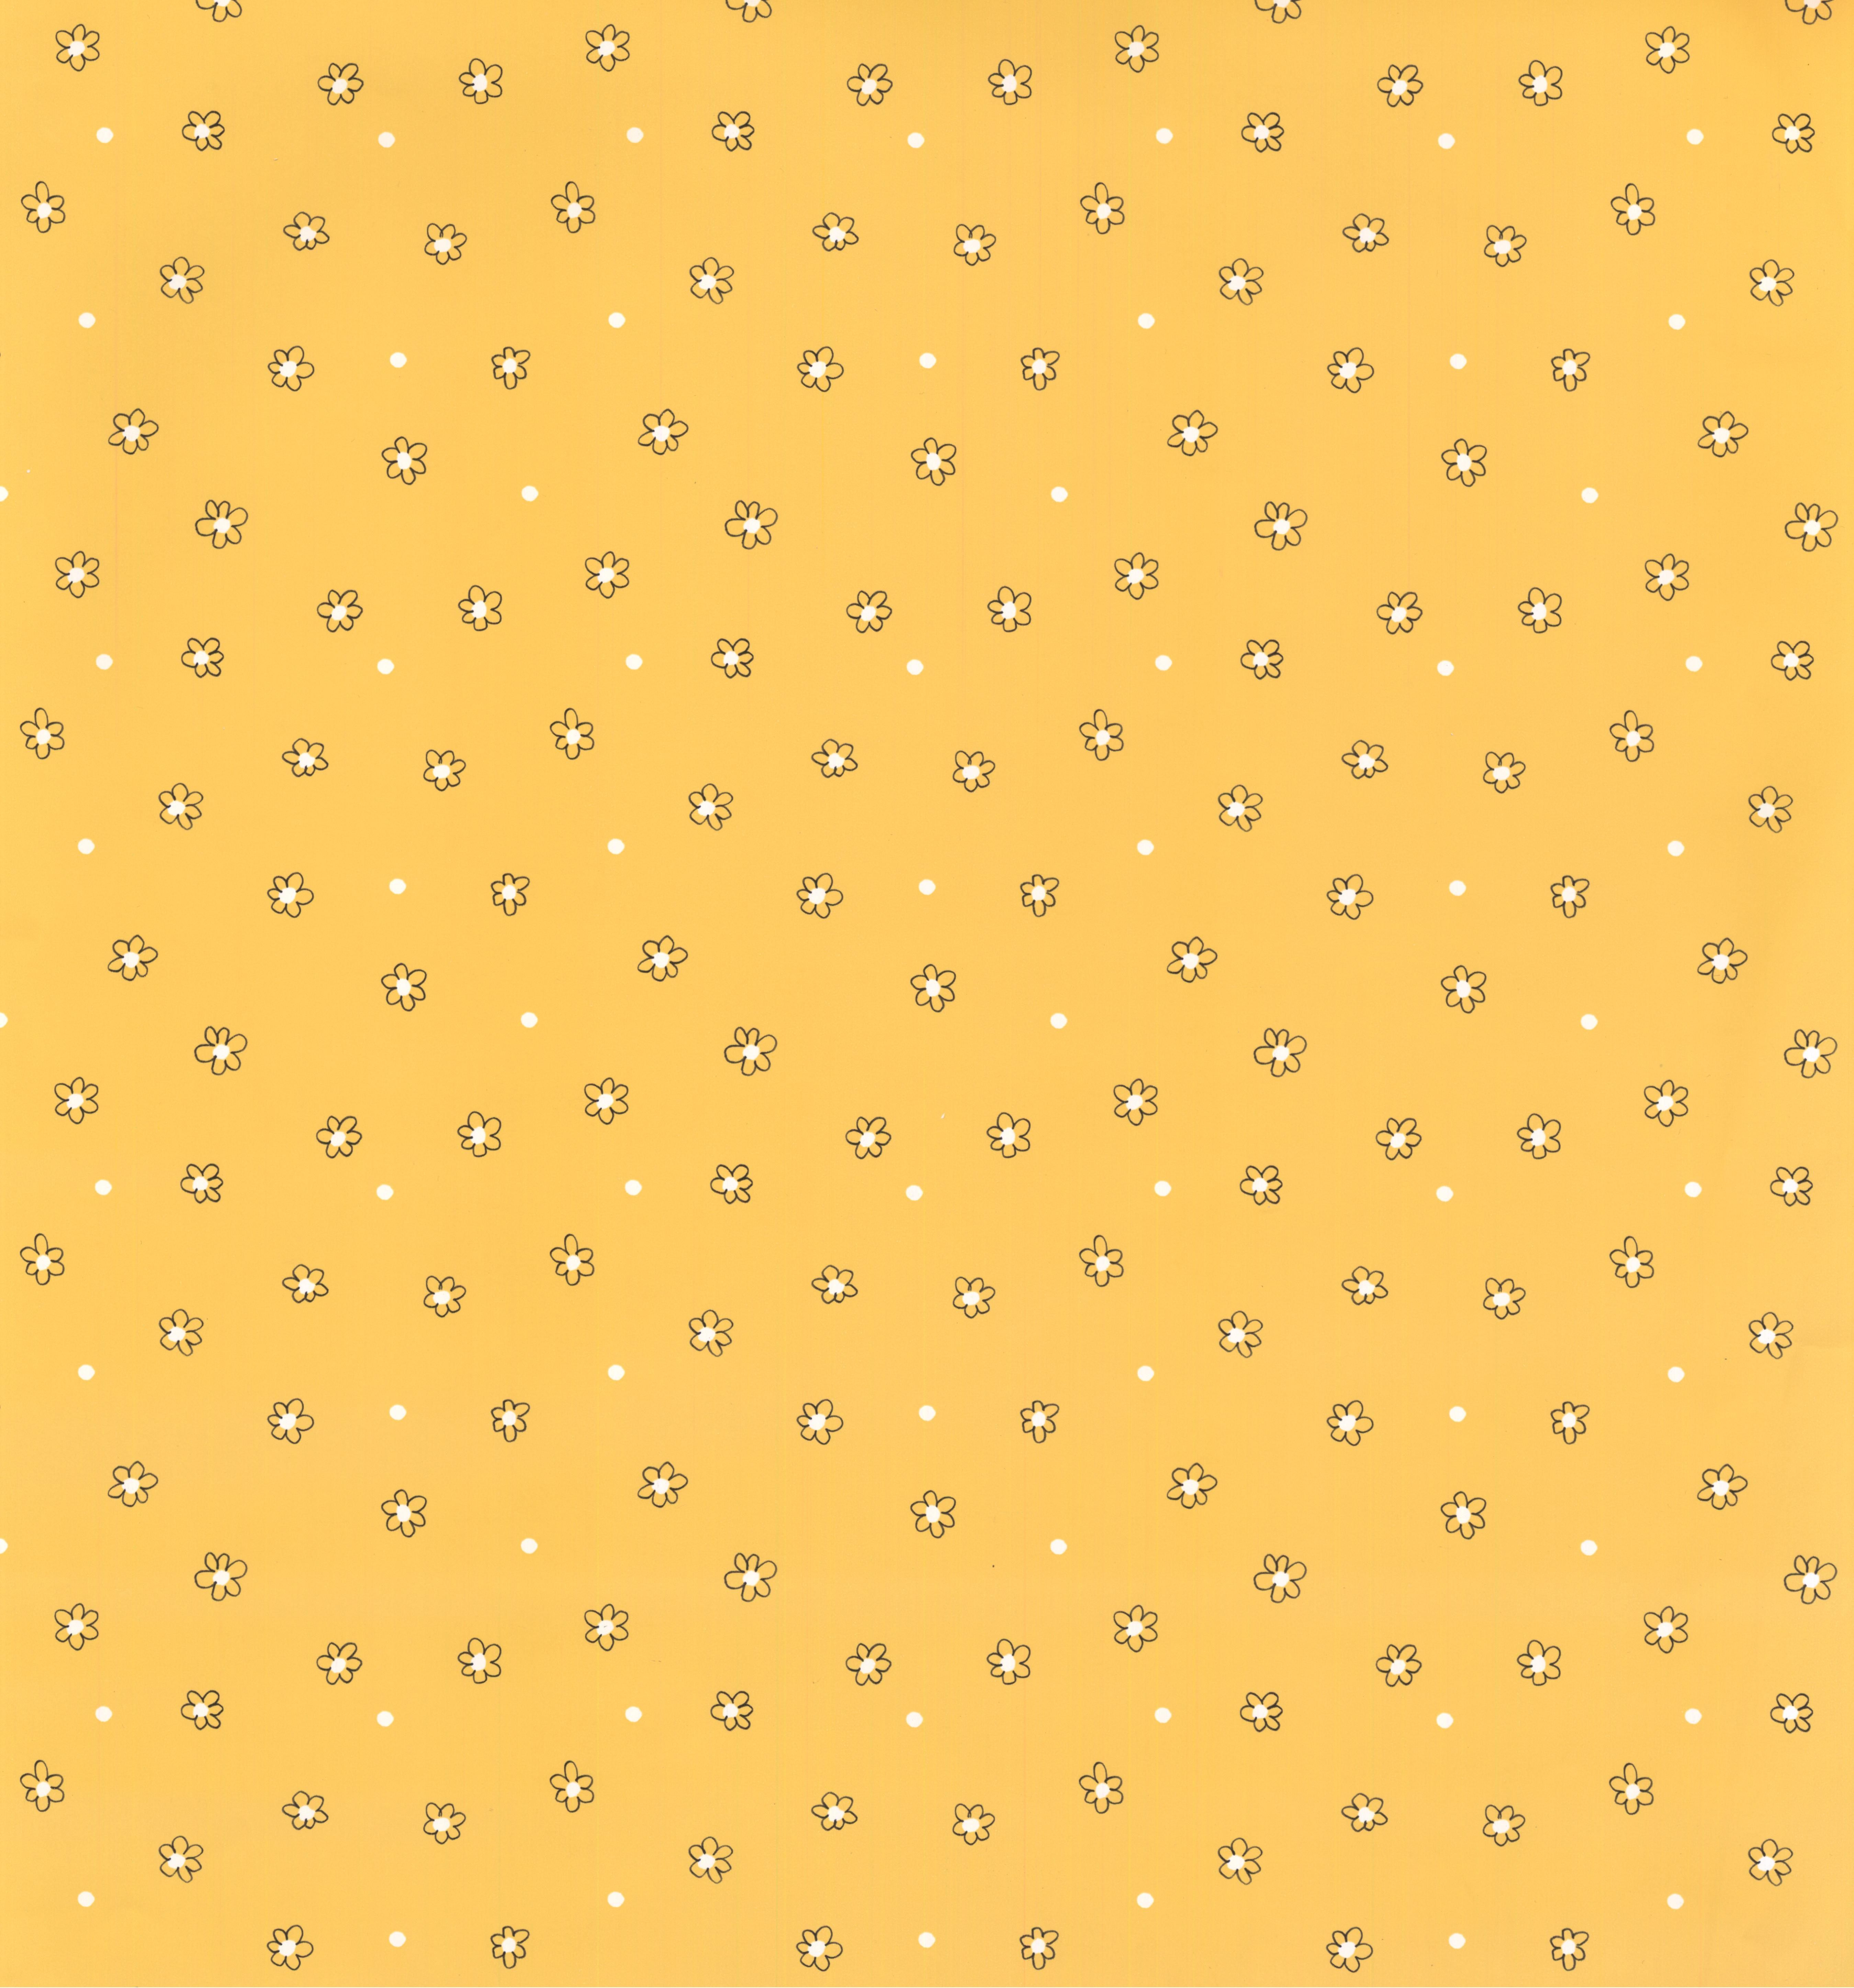 Cute Yellow Wallpapers Top Free Cute Yellow Backgrounds Wallpaperaccess 45+ free cute iphone wallpapers with hd quality. wallpaperaccess